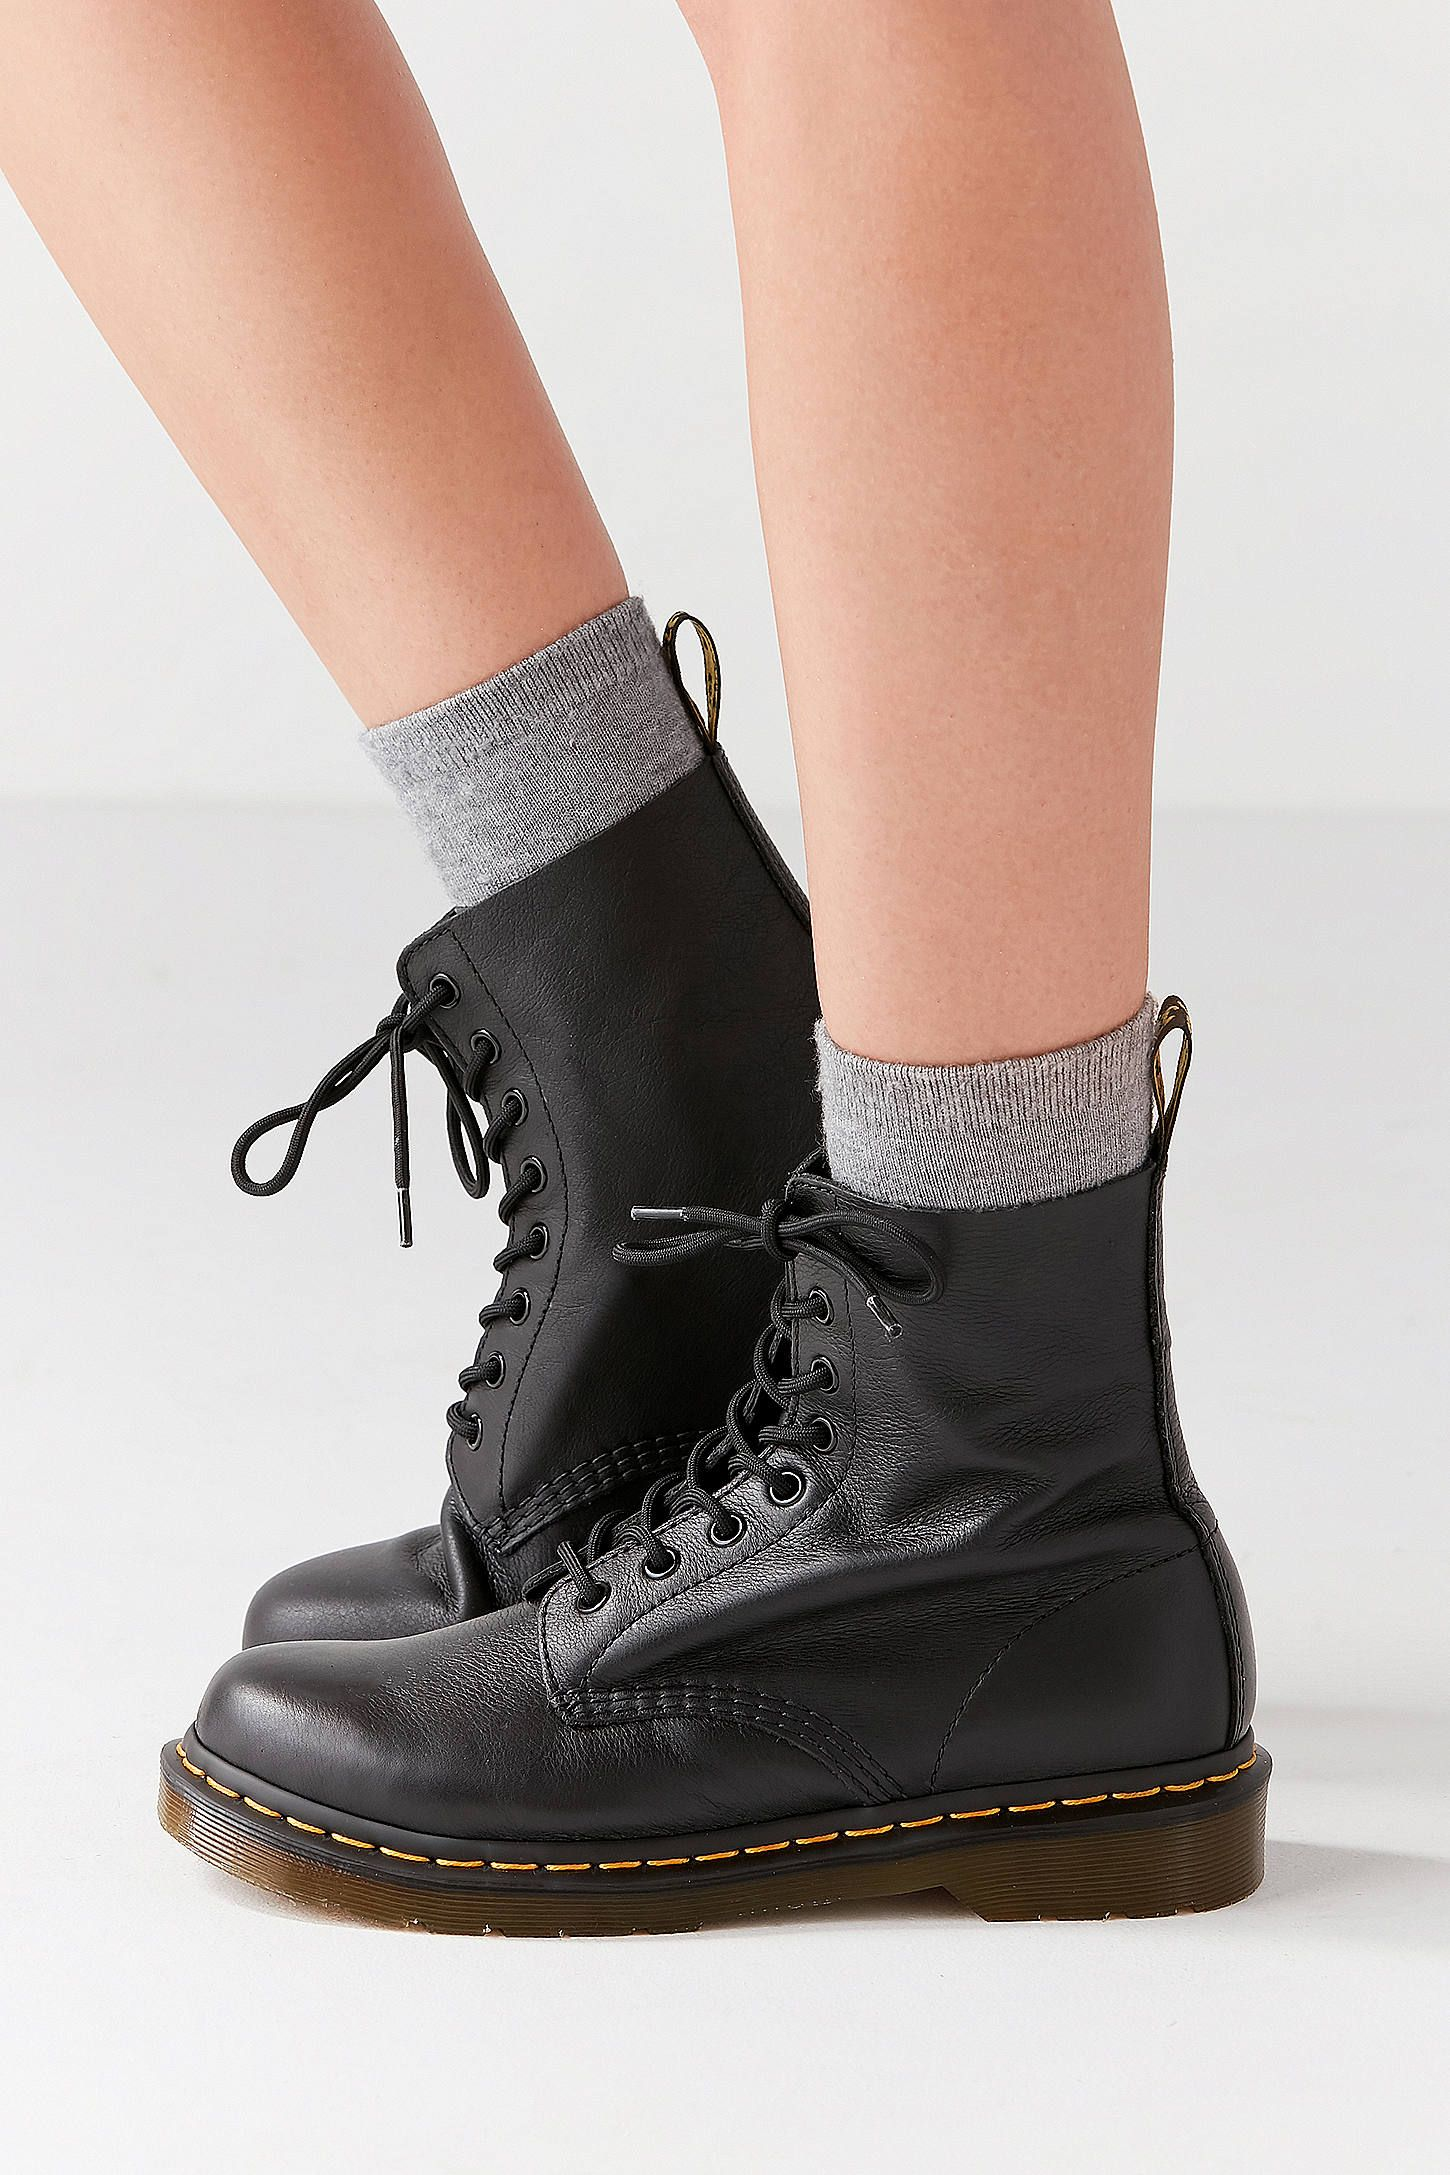 2037945b2b15 Dr. Martens Pascal 8-Eye Black Boots in 2019 | SUMMER | Doc martens ...